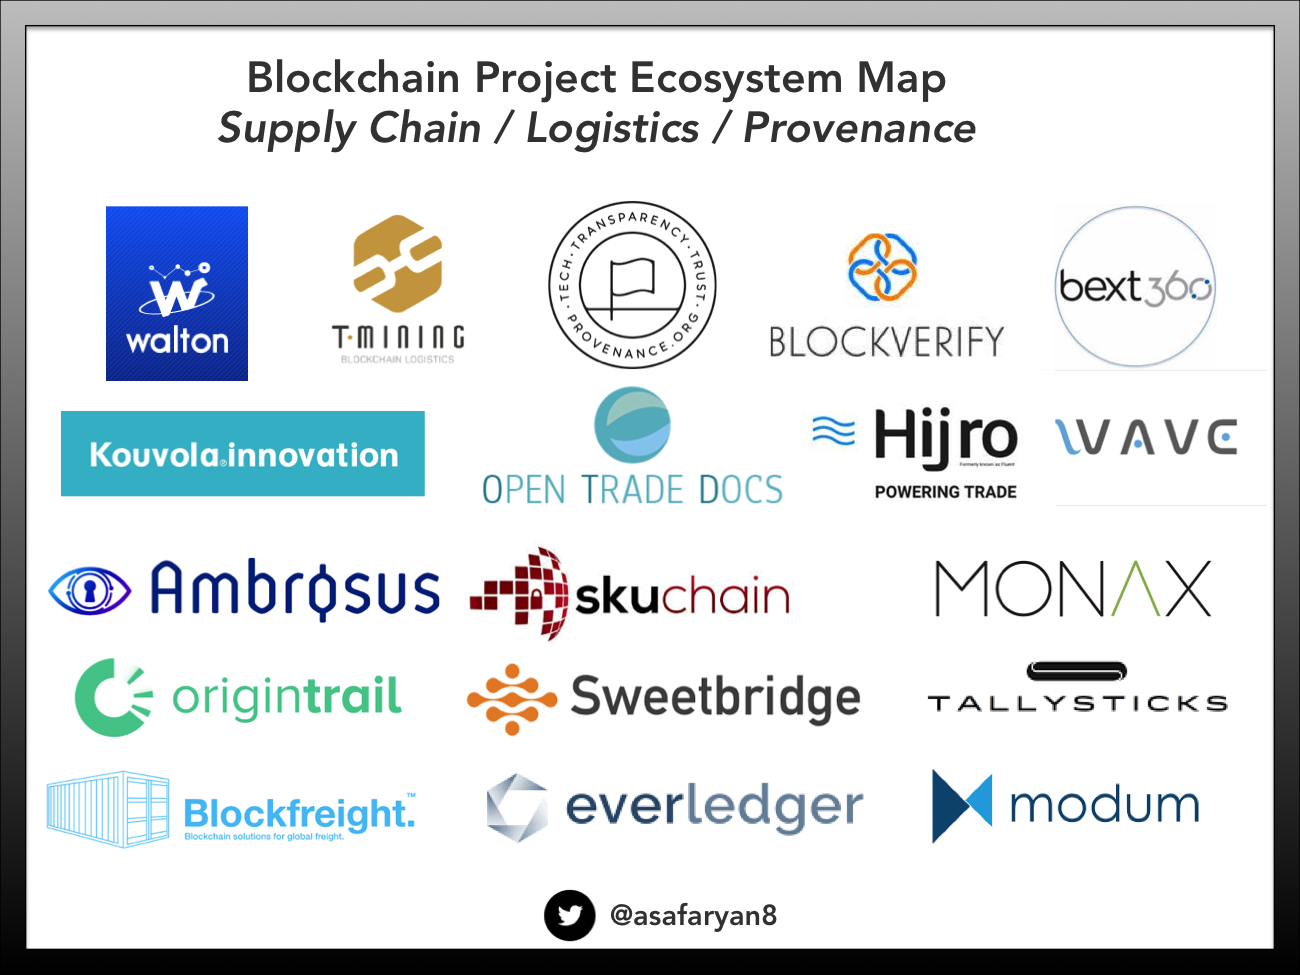 Blockchain projects aiming to reinvent the Supply Chain: Landscape Map